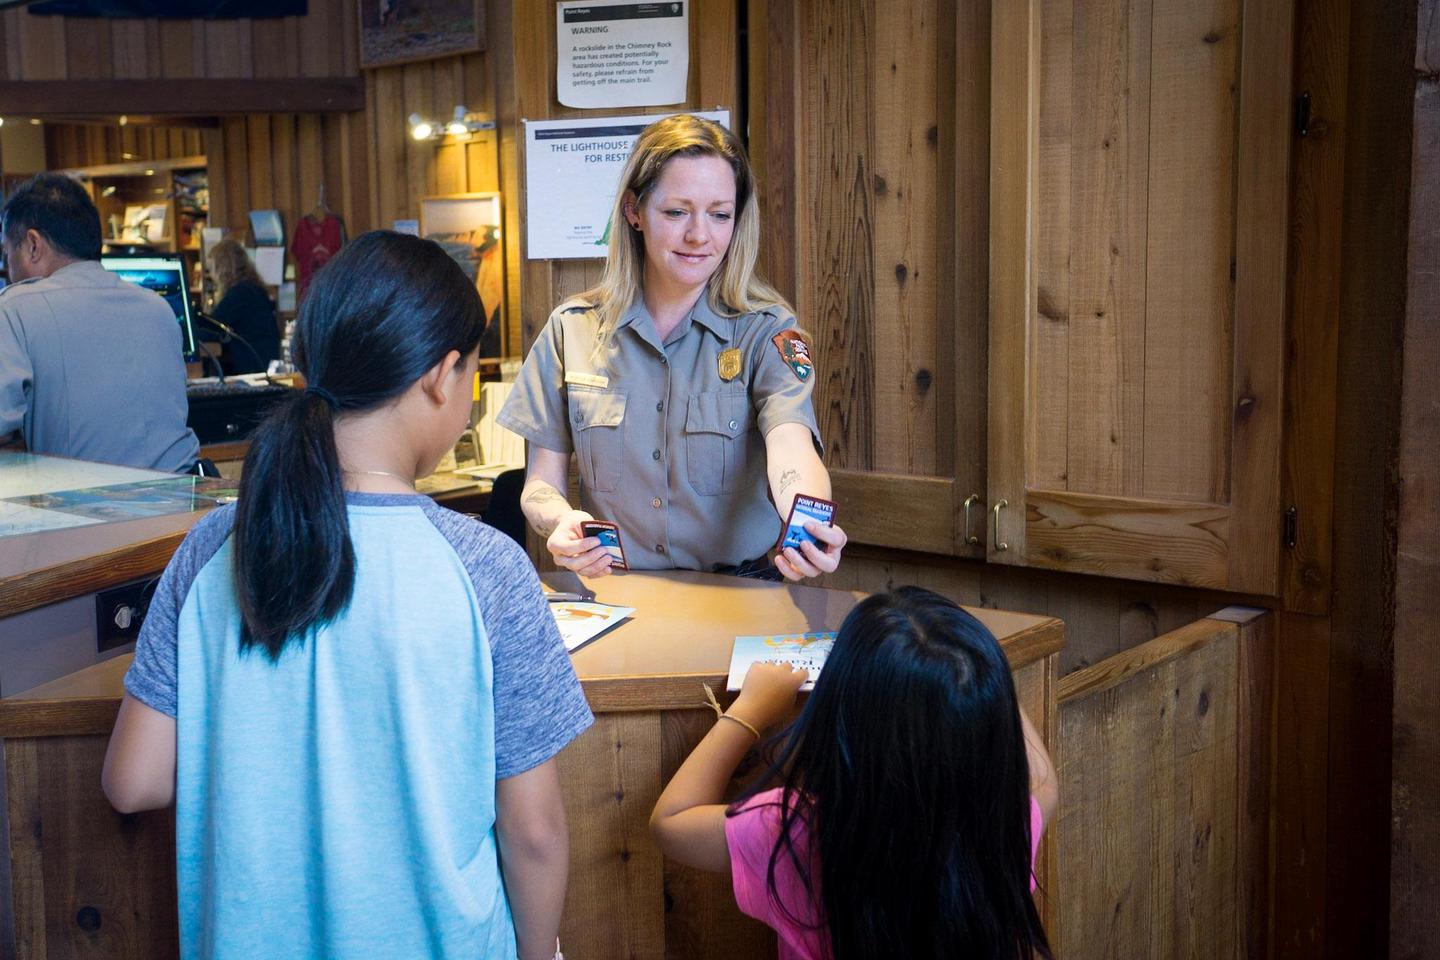 Bear Valley Visitor Center Information DeskRangers and volunteers are available at the information desk with maps, information and junior ranger badges!